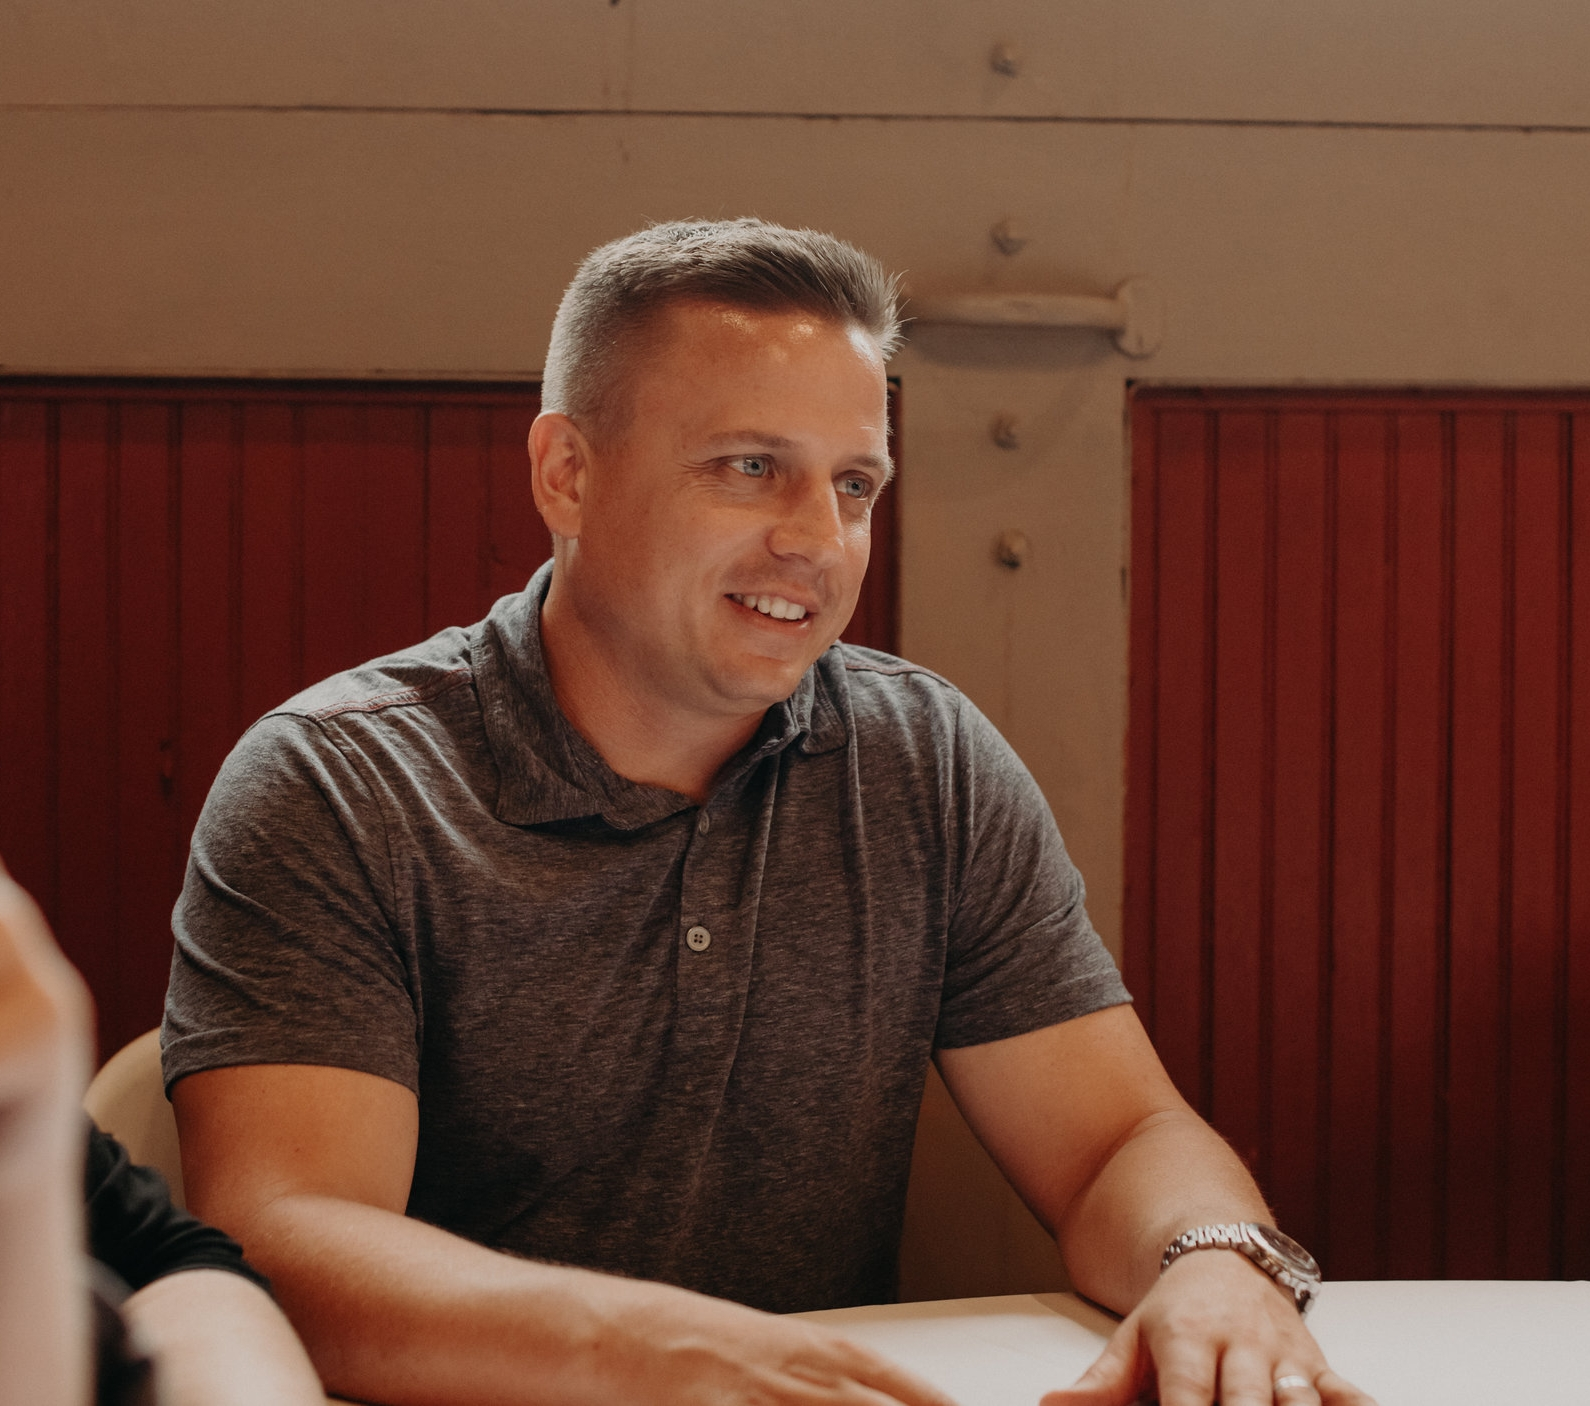 Lieutenant Colonel Kirk Duncan, MBA – Military Affairs Director   Kirk has served for 17 years an active duty Soldier in the United States Army. He understands the issues Combat Service Members face serving our country and the struggles with reintegration at home. He is passionate about helping Veterans & Families find the appropriate therapy and treatment needed to move past the affects of PTSD and TBI.